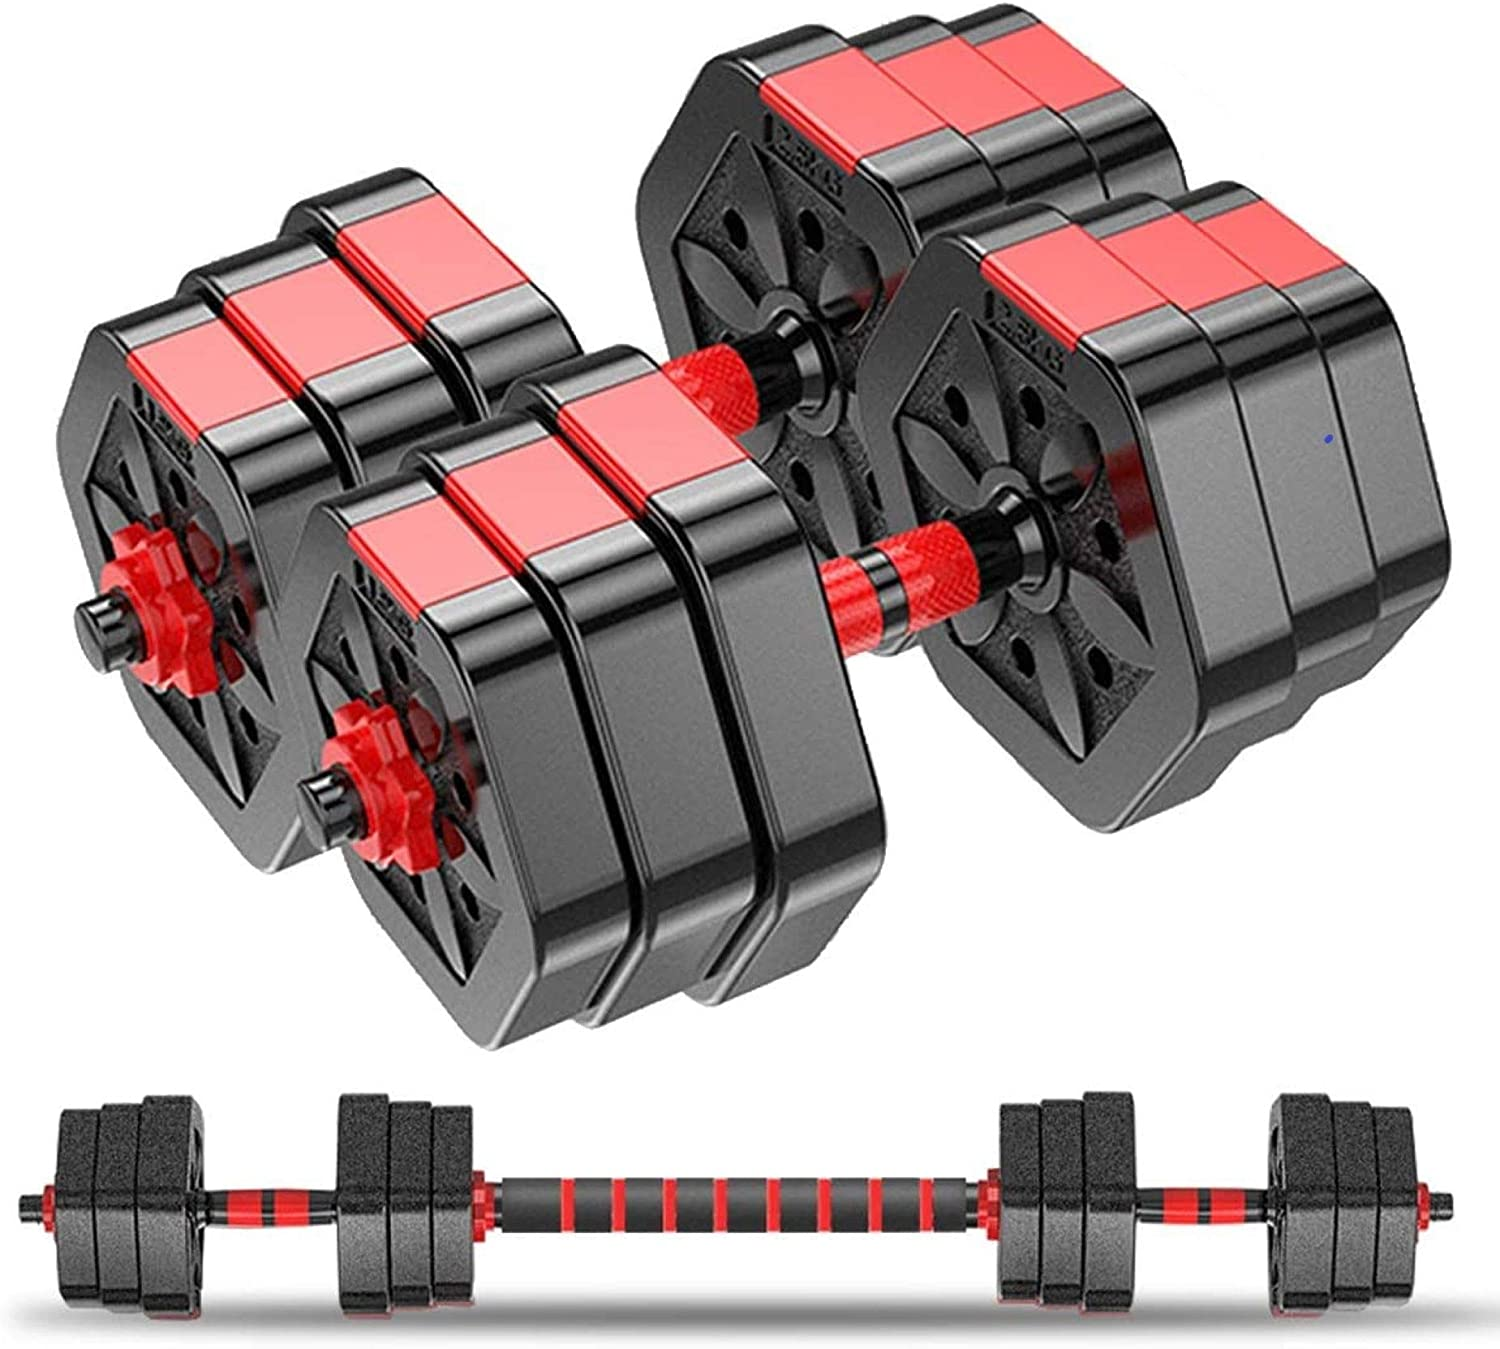 Weights Dumbbells Set – Pair of 44 Lbs Adjustable Hands Dumbbells for Home Gym – Ultimate Two in One Exercise Equipment – Improve Resistance, Muscle Mass, Stamina and Endurance,Perfect for Home Gym